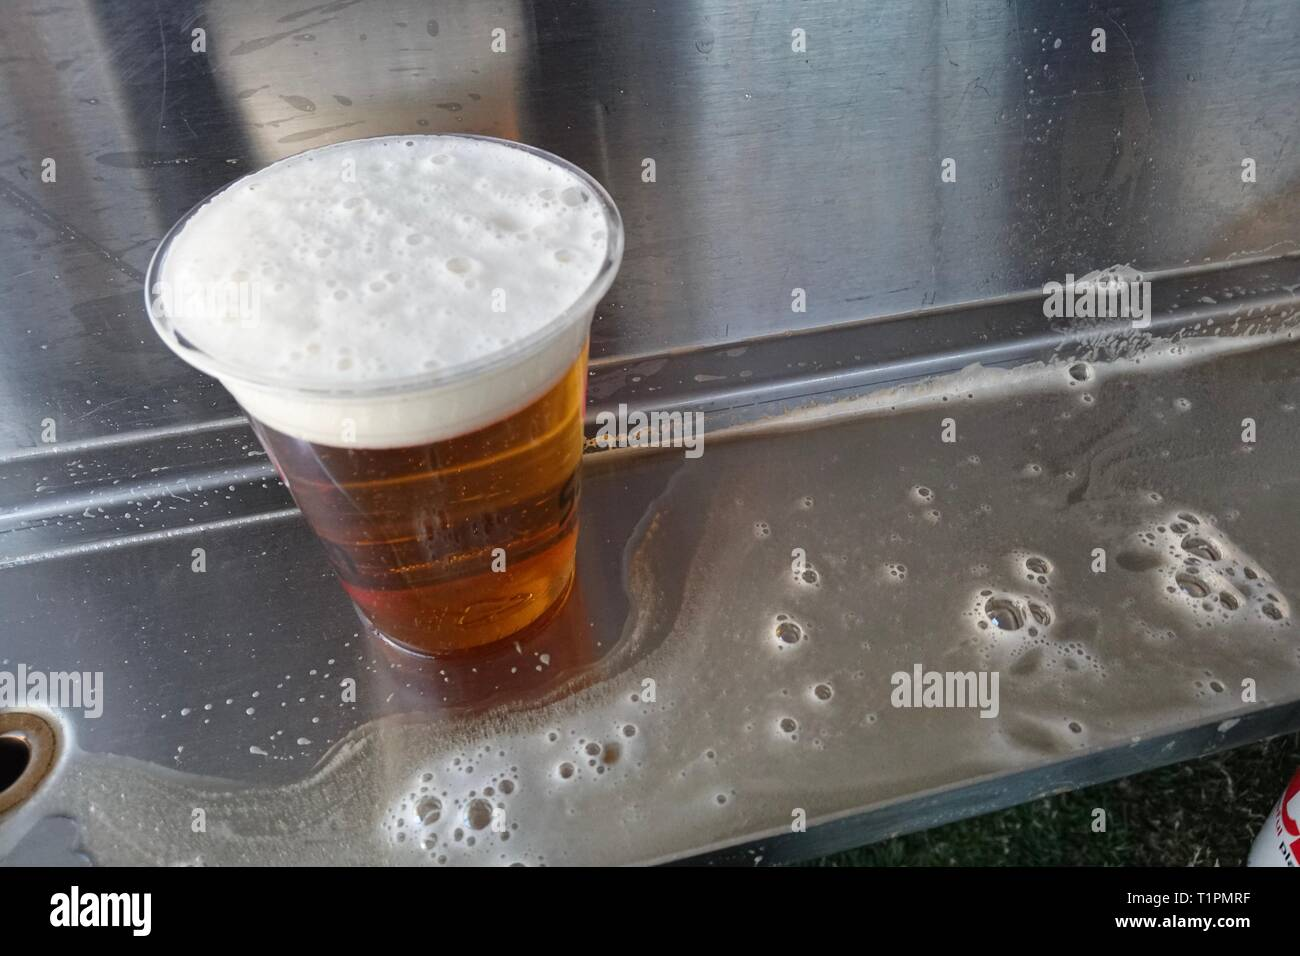 A cup of beer after being filled by a draft keg. - Stock Image